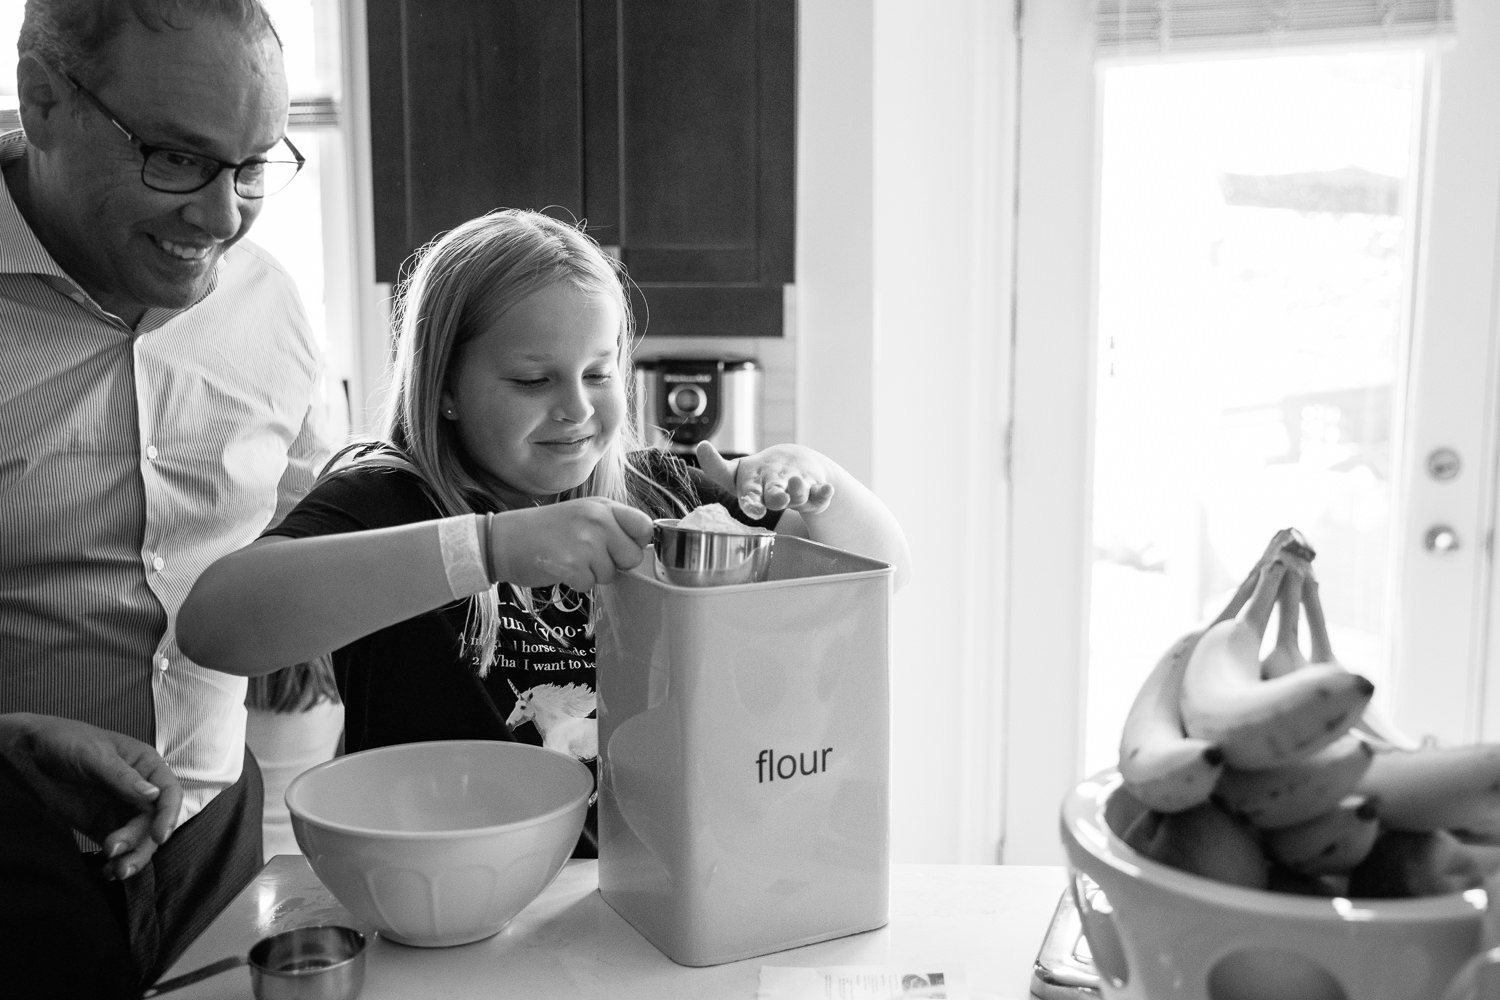 father leaning over 10 year old daughter's shoulder as she measures flour to make pancakes for family brunch - Stouffville Lifestyle Photos